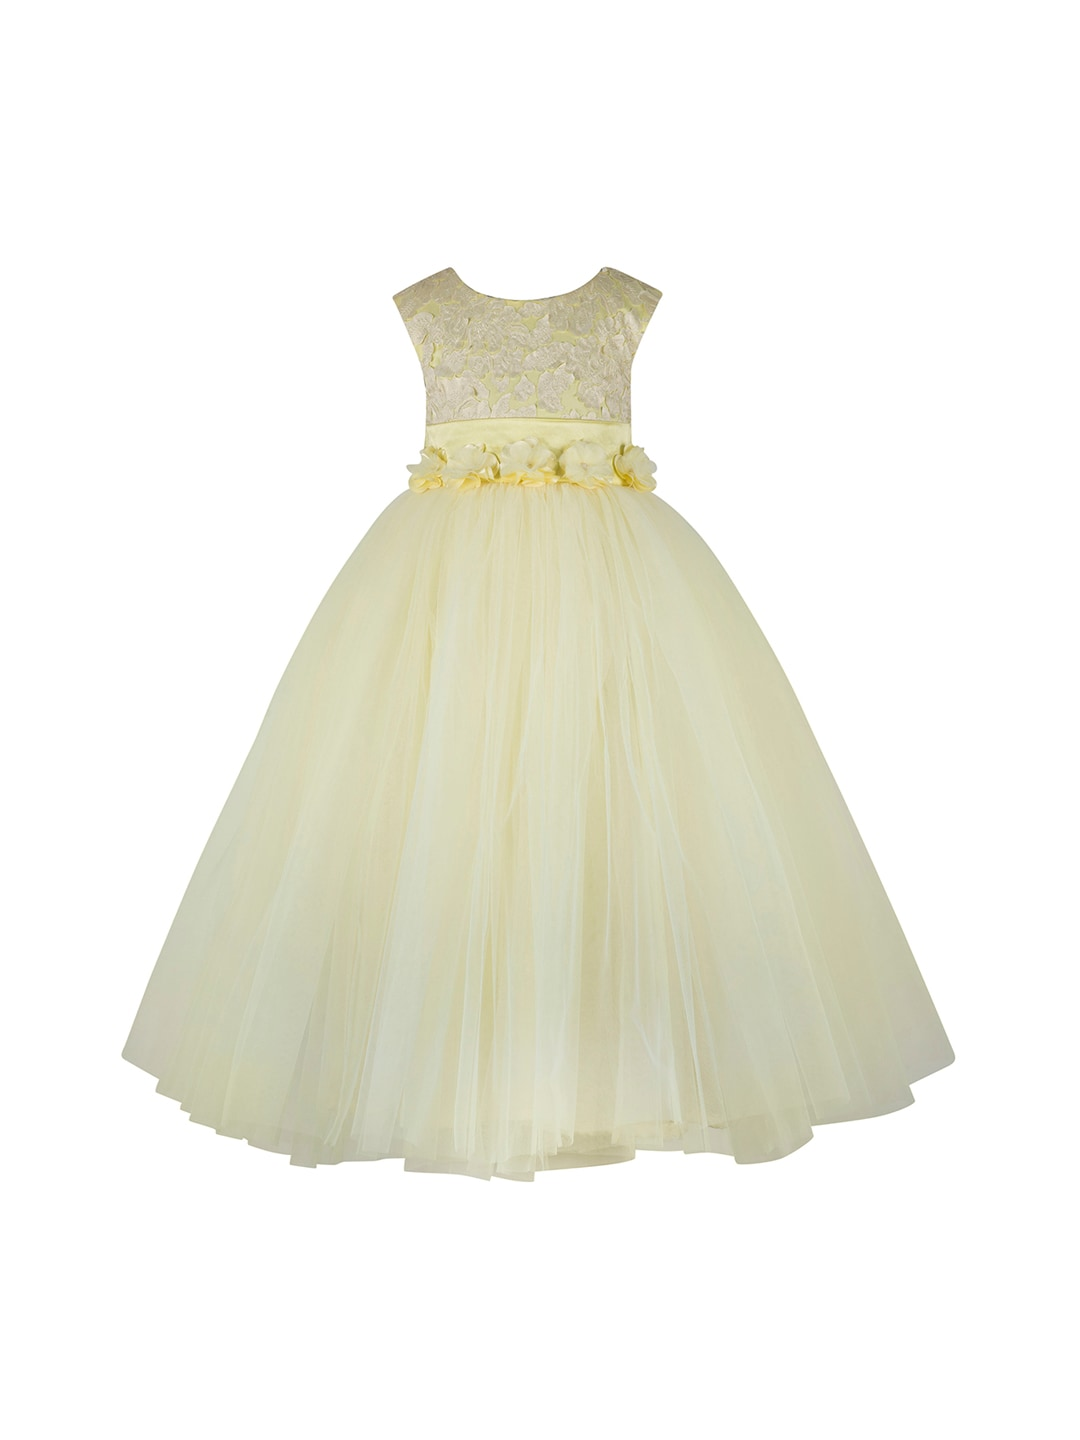 Kids Party Dresses - Buy Partywear Dresses for Kids online  832d8ed906d2